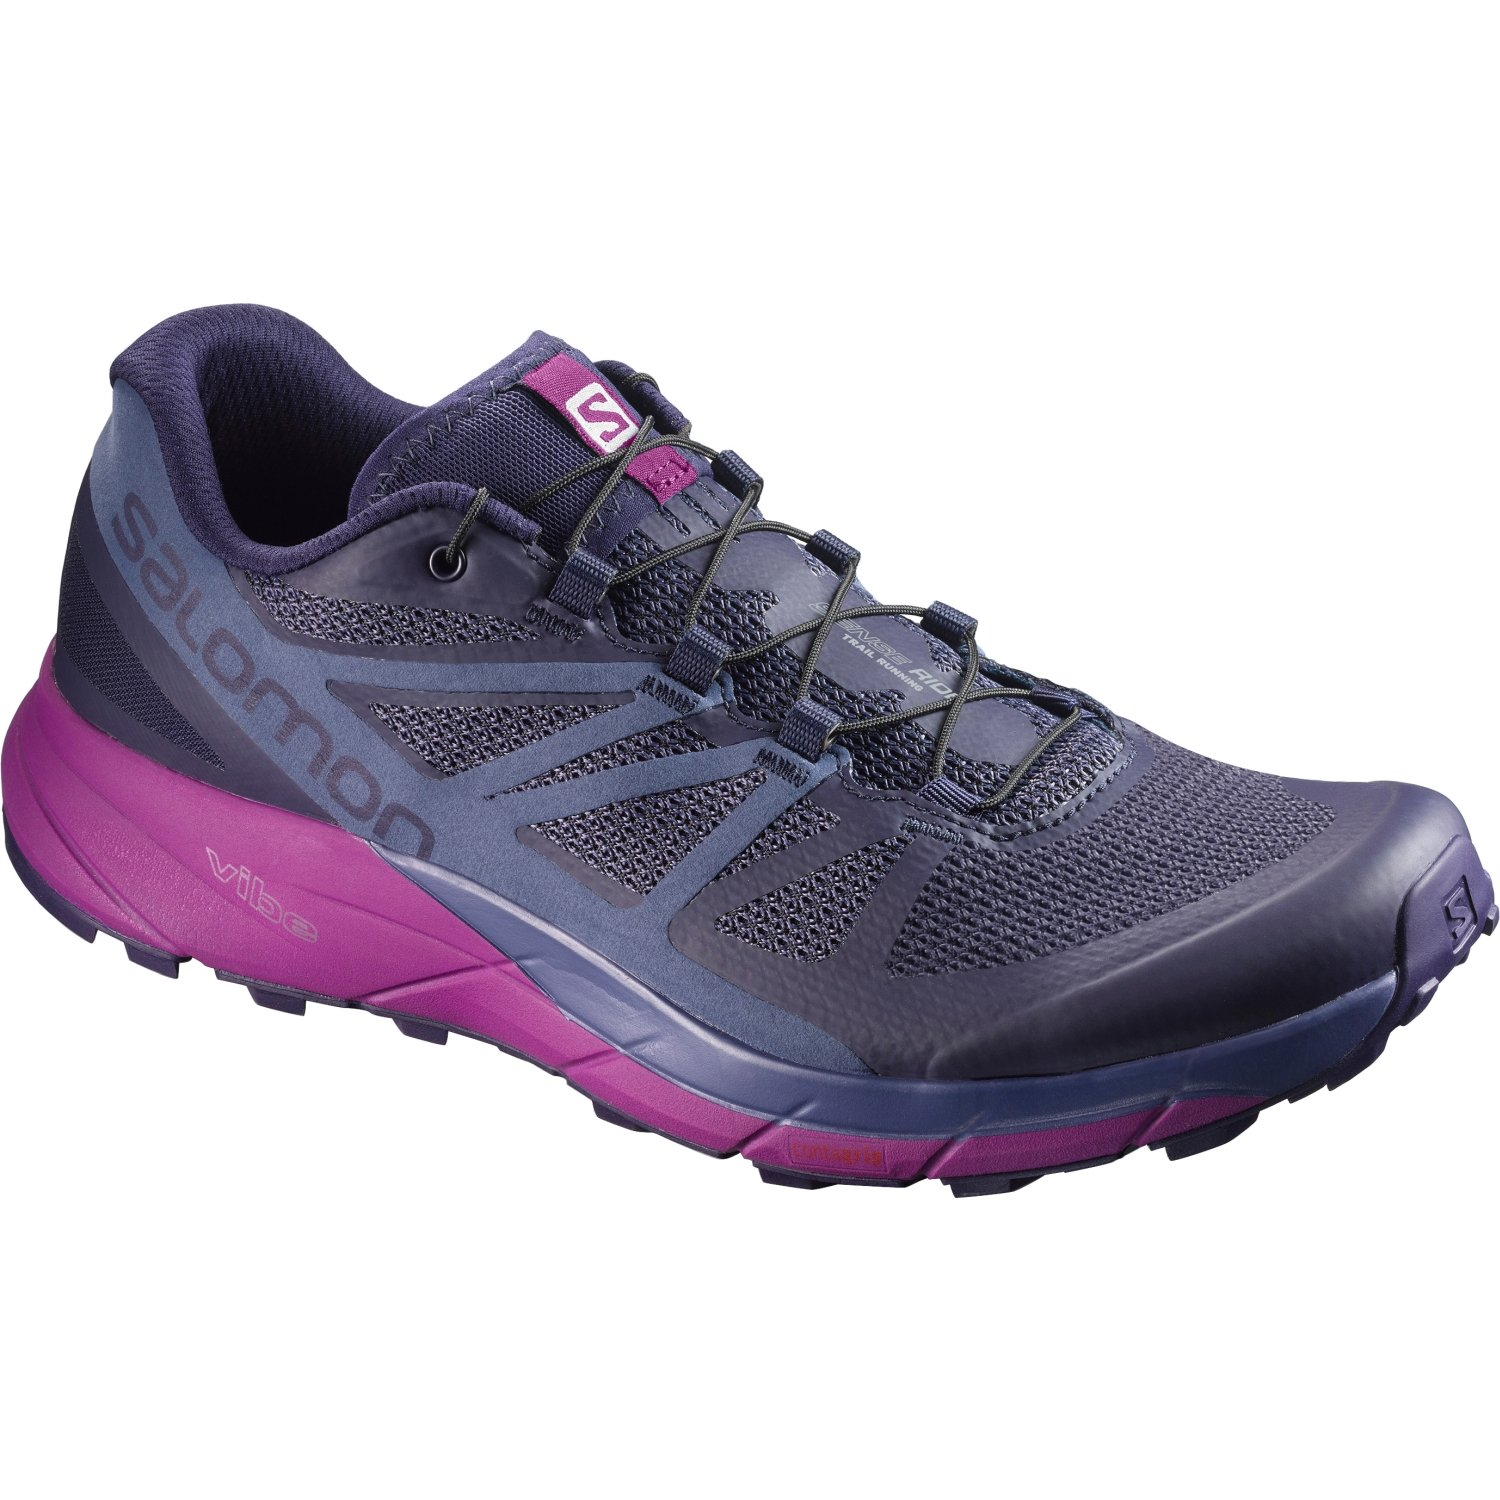 Salomon Sense Ride Trail Running Shoe - Women's Evening Blue/Crown Blue/Grape Juice 6.5 by Salomon (Image #1)